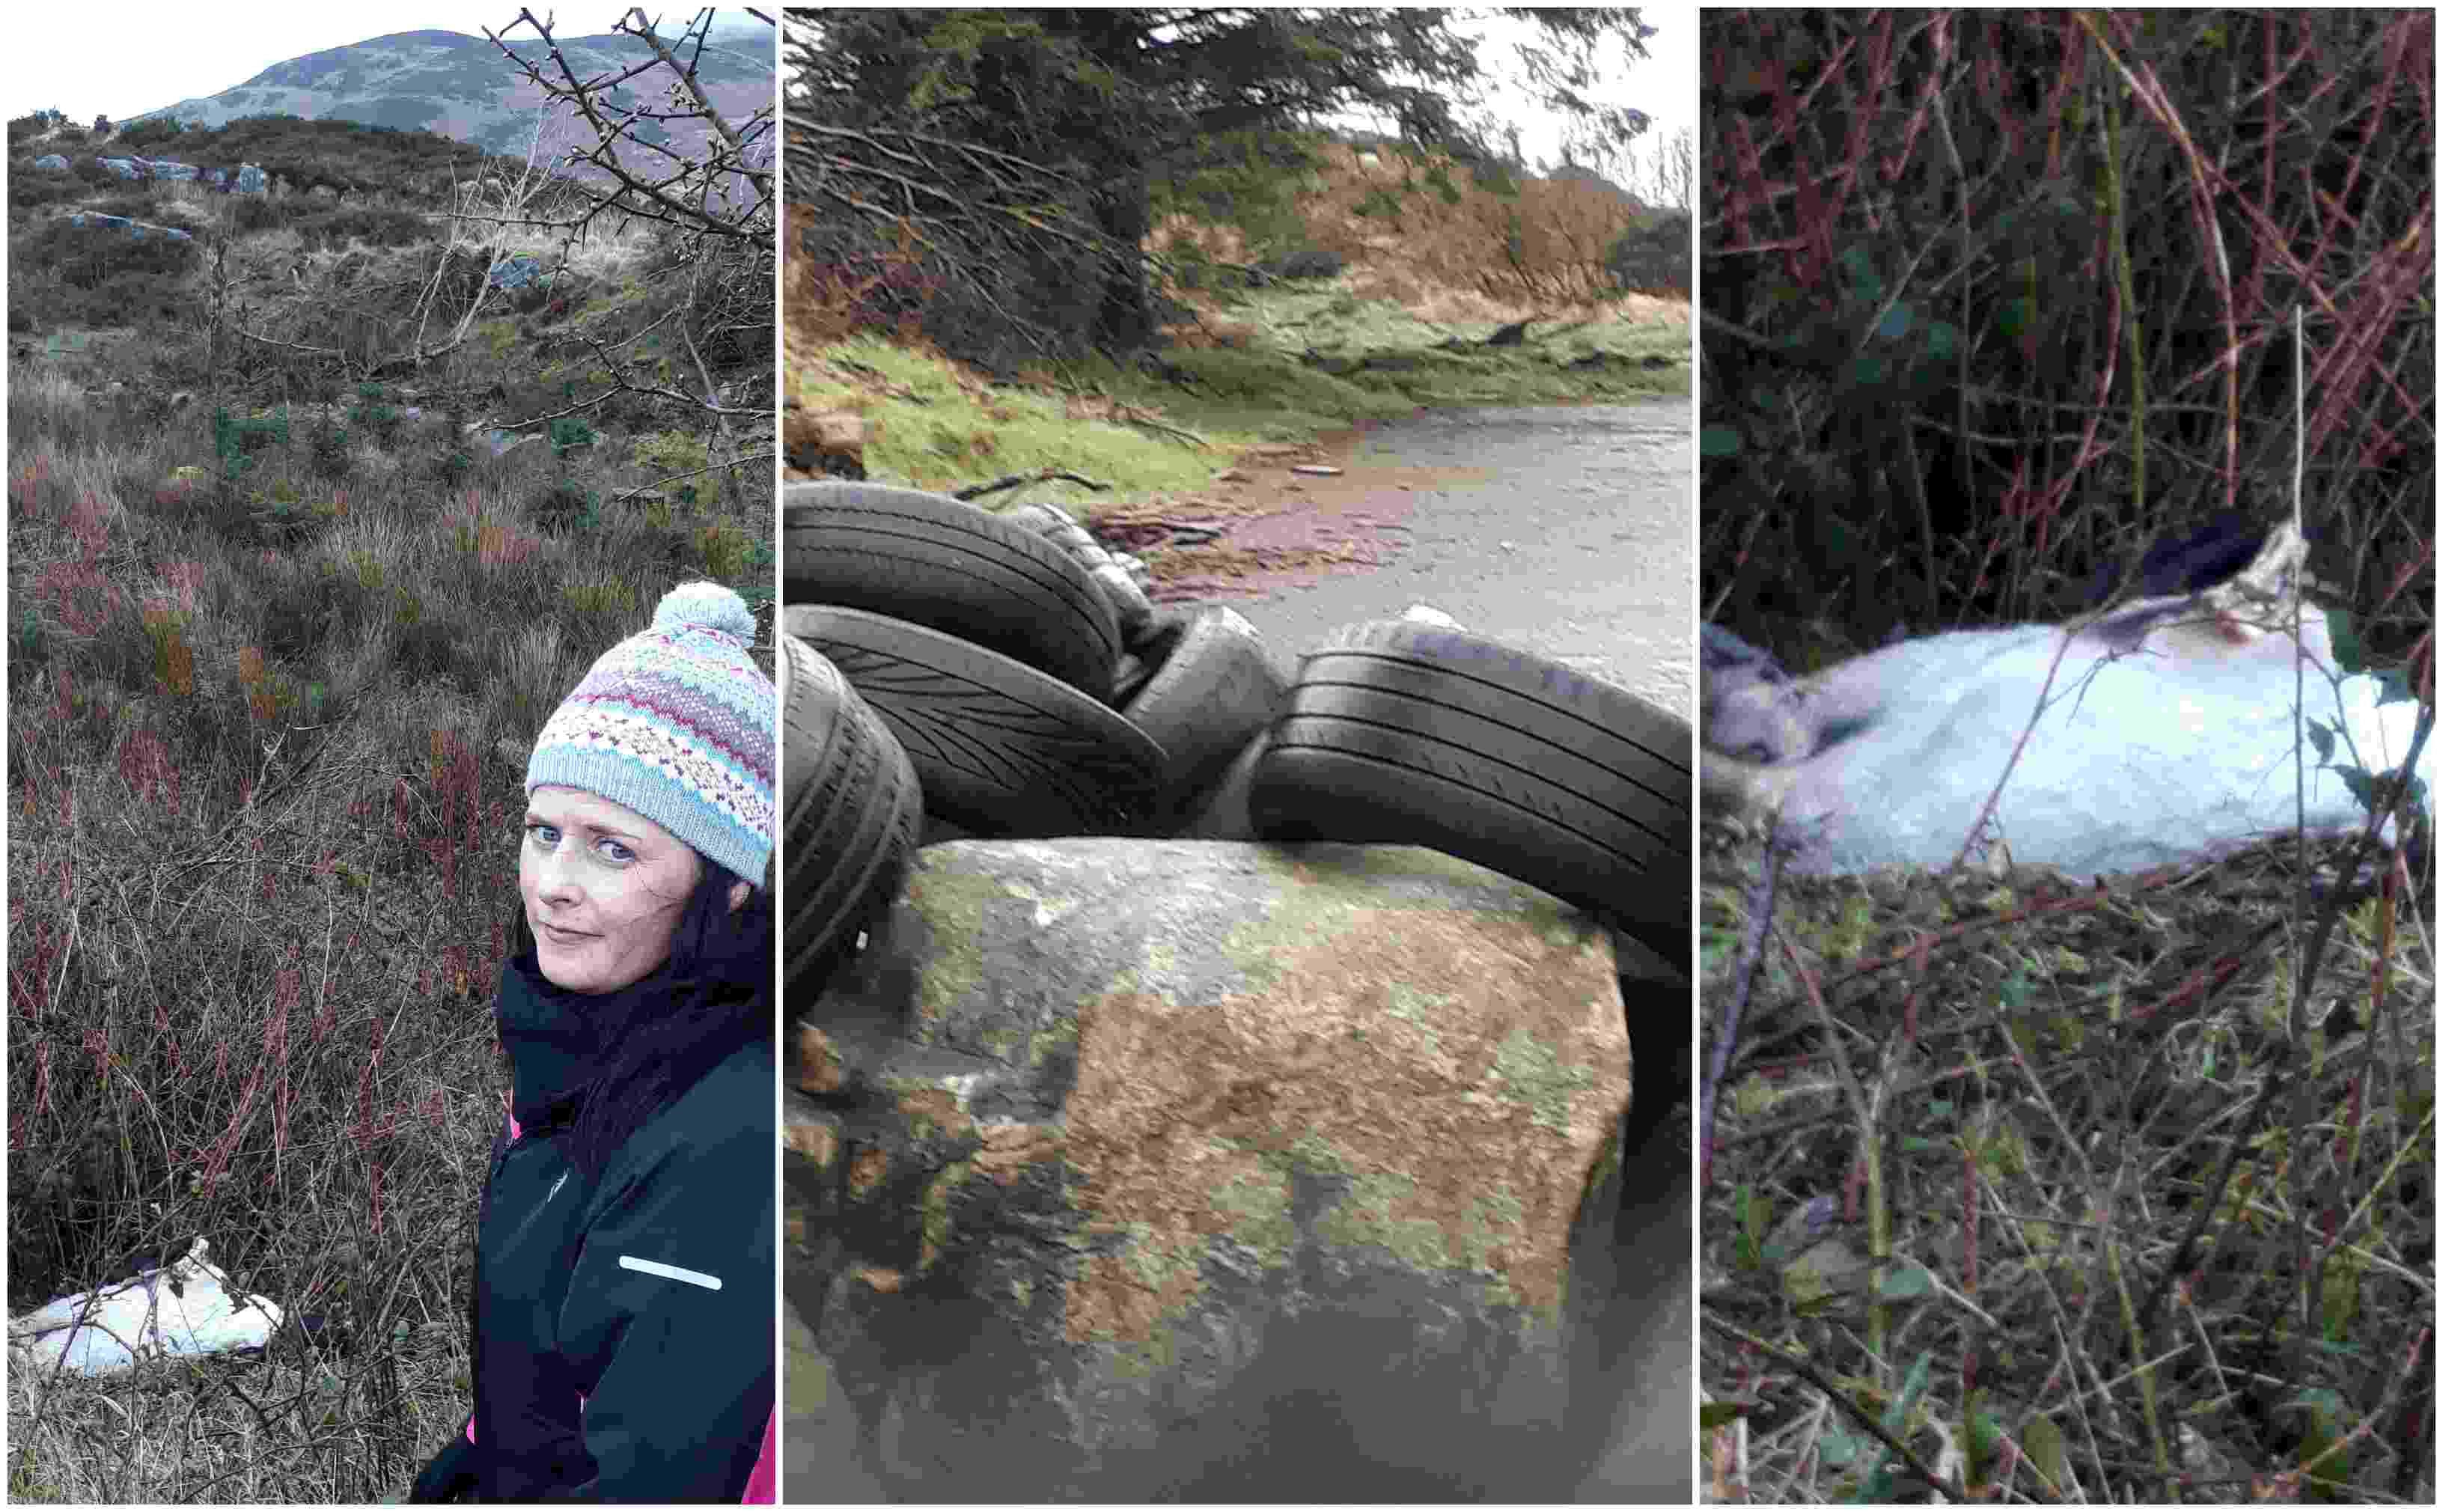 Oonagh Magennis on fly-tipping